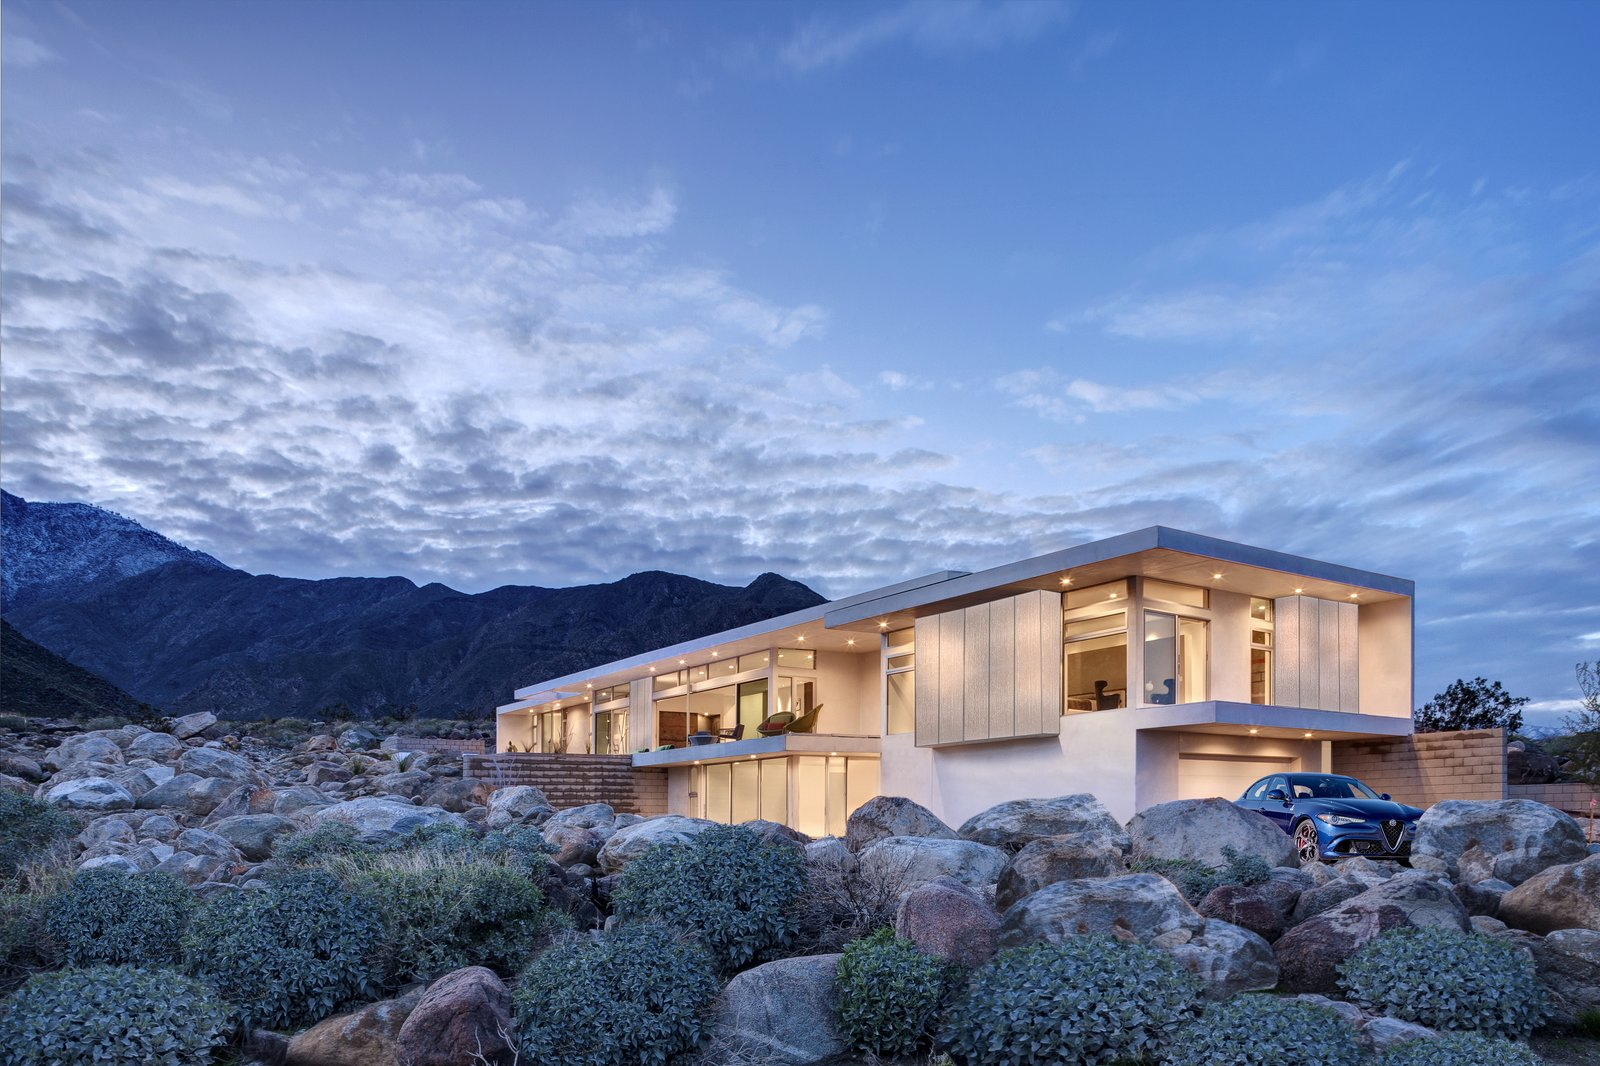 Desert palisades chino canyon modern home in palm springs for New modern homes palm springs